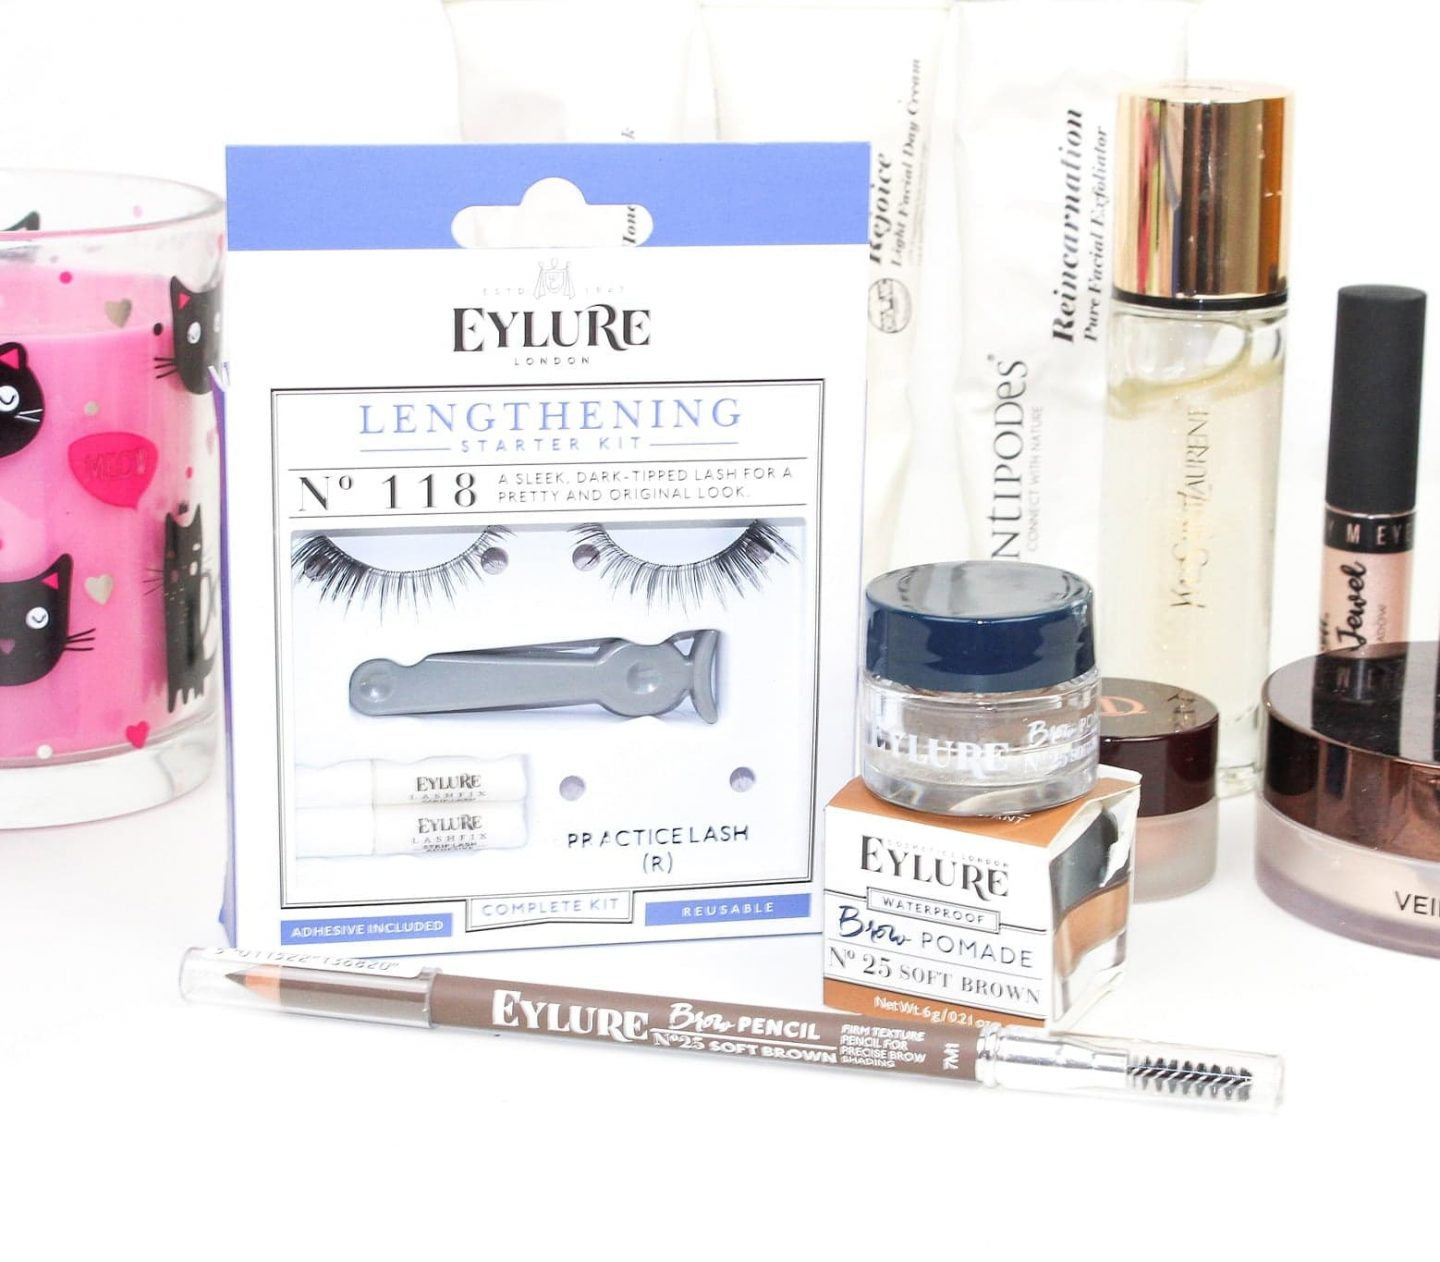 FalseEyelashes.co.uk | Eylure Lengthening Lashes 118 Starter Kit